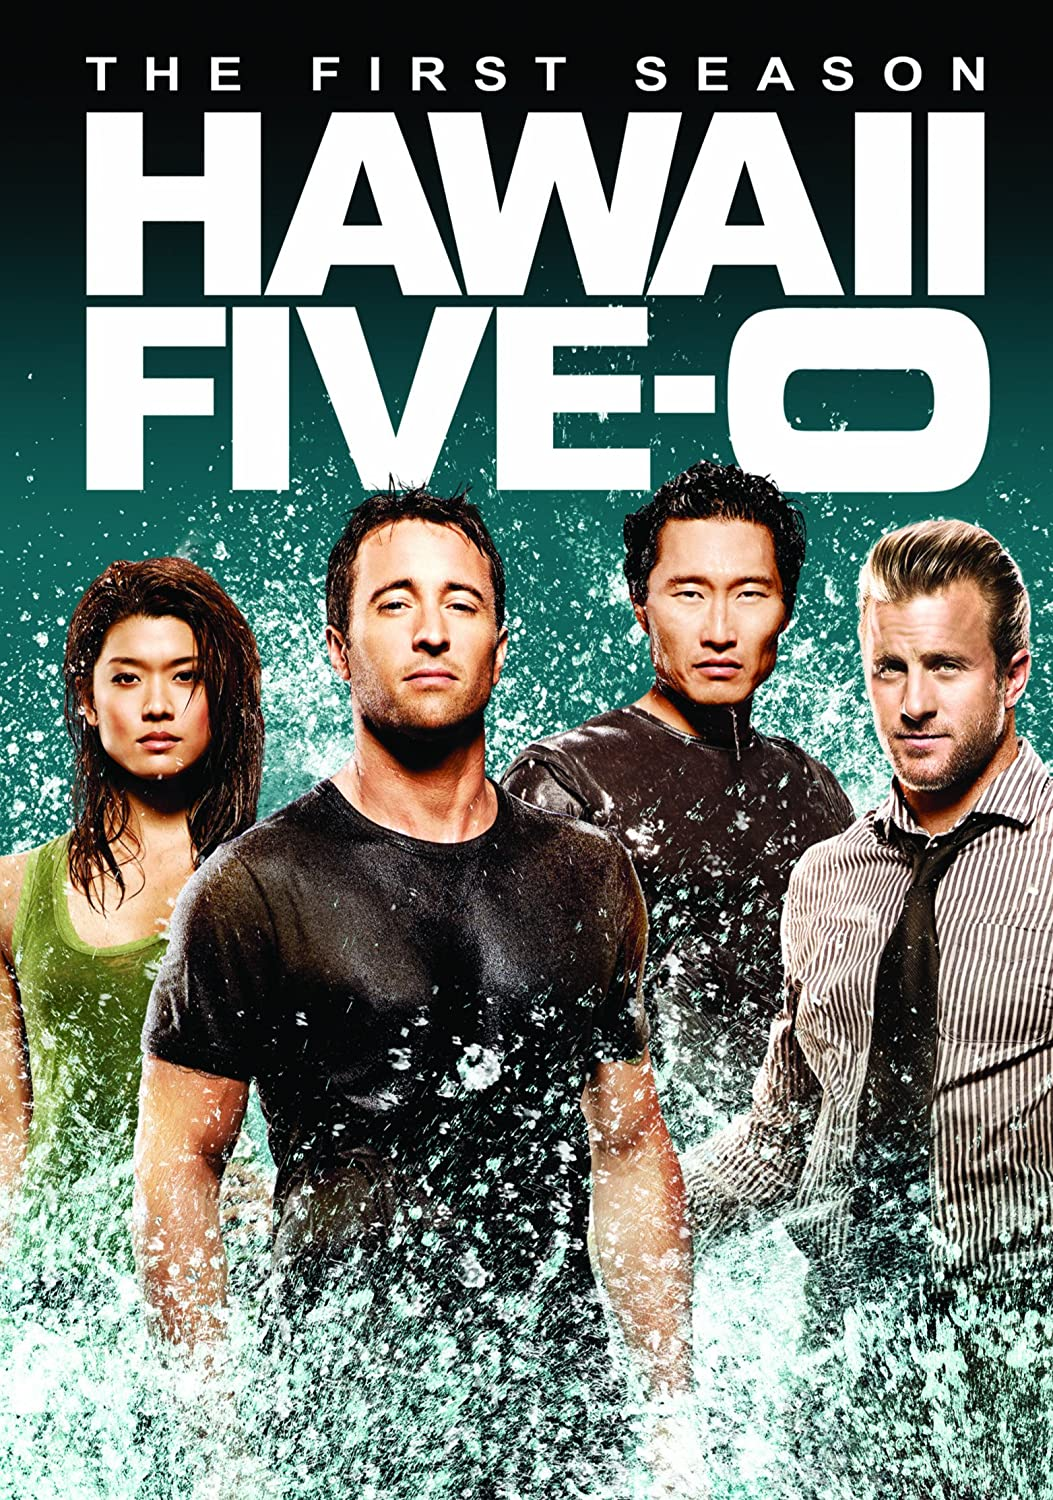 Hawaii Five O Season 1 Reino Unido Dvd Amazones Cine